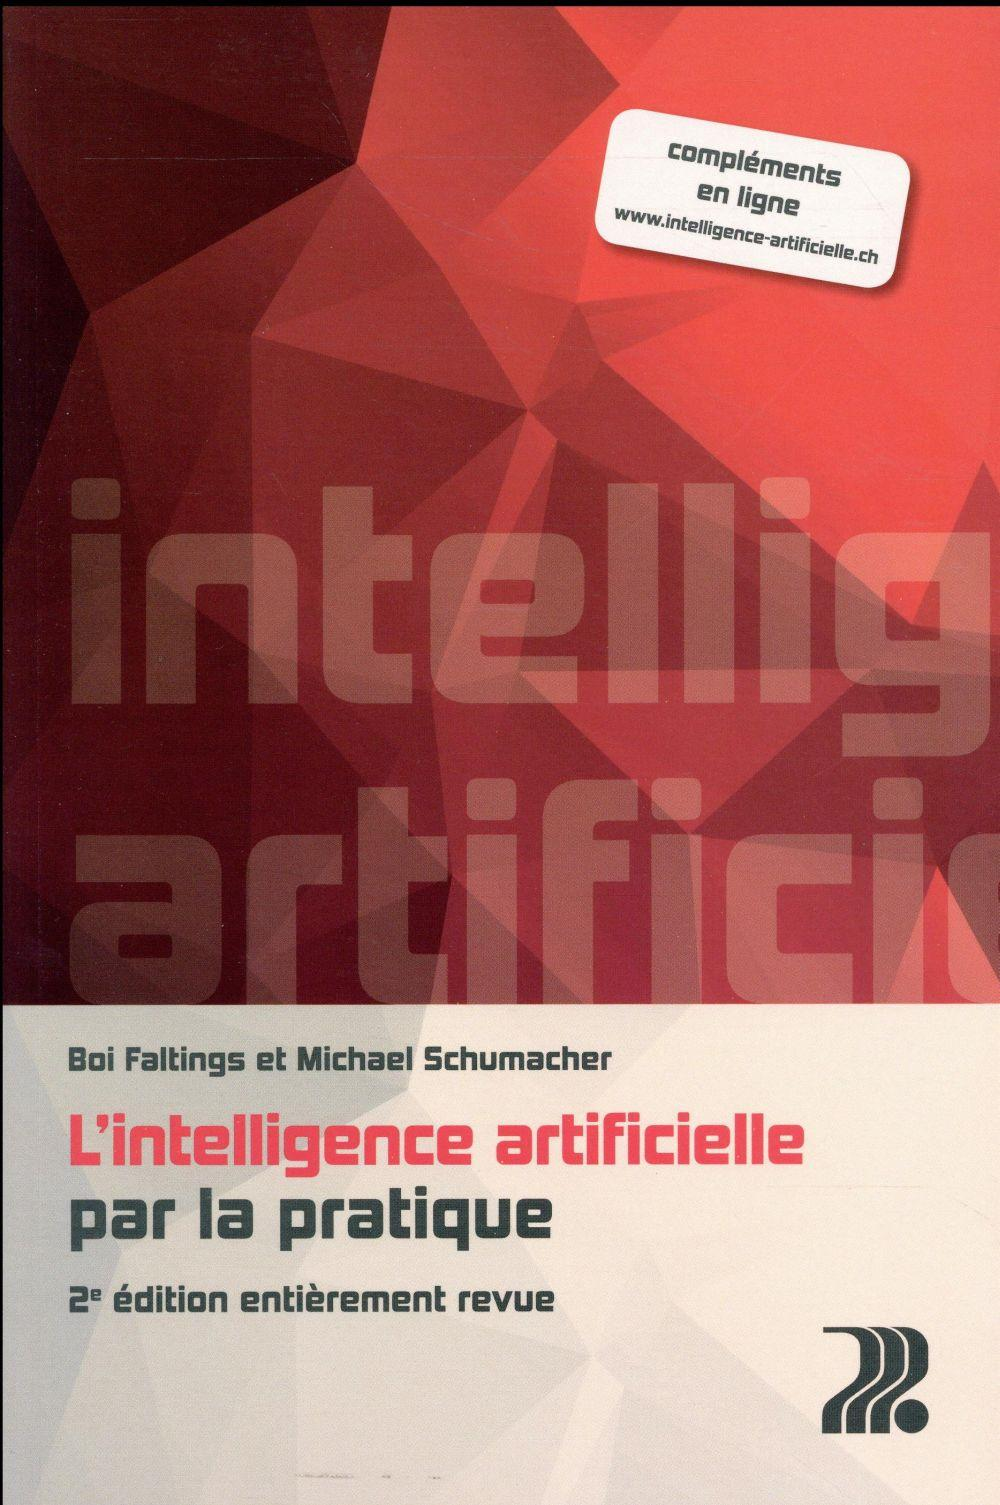 Vente Livre :                                    L'intelligence artificielle par la pratique (2e édition)                                      - Faltings/Ignaz Shuma  - Boi Faltings  - Michael Schumacher